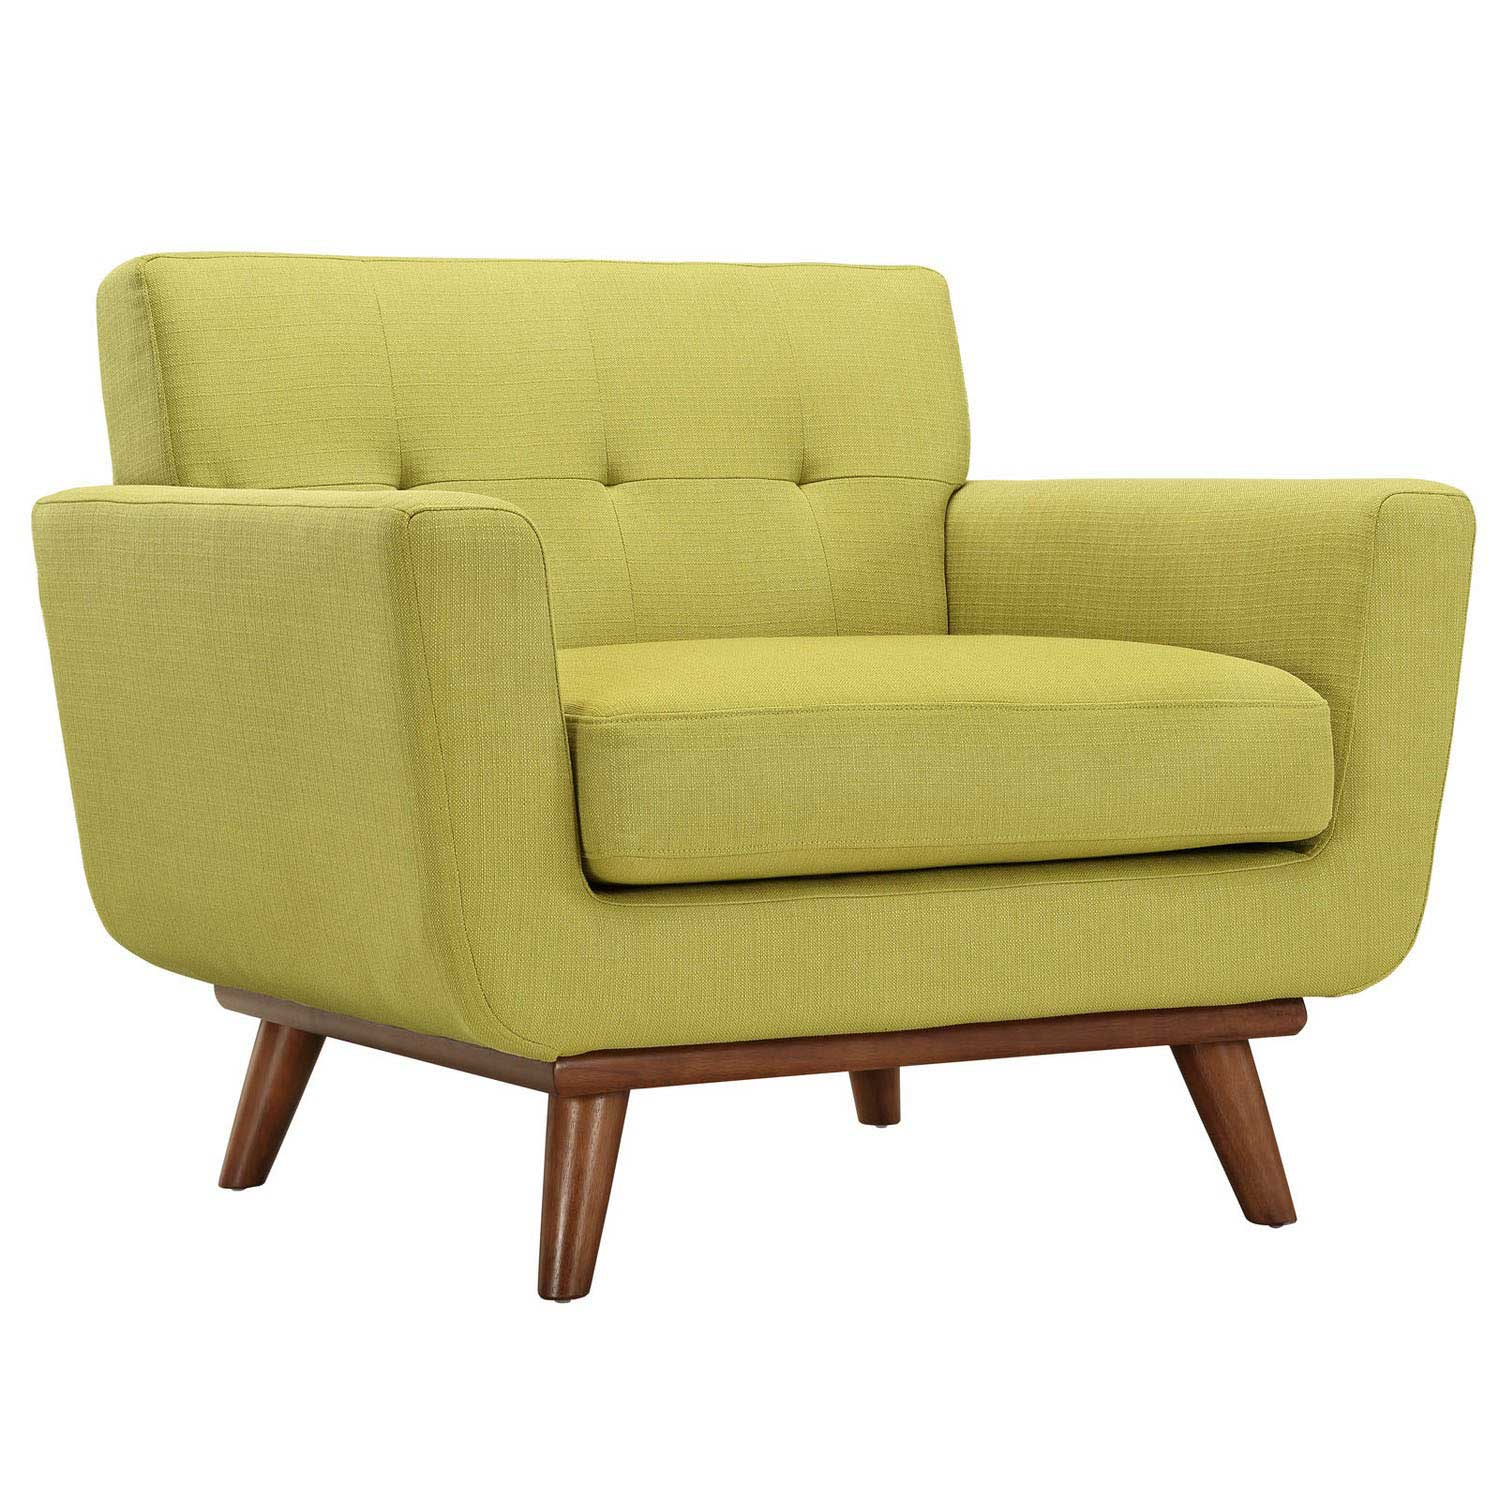 Modway Engage 3 PC Sofa Loveseat and Armchair Set - Wheatgrass